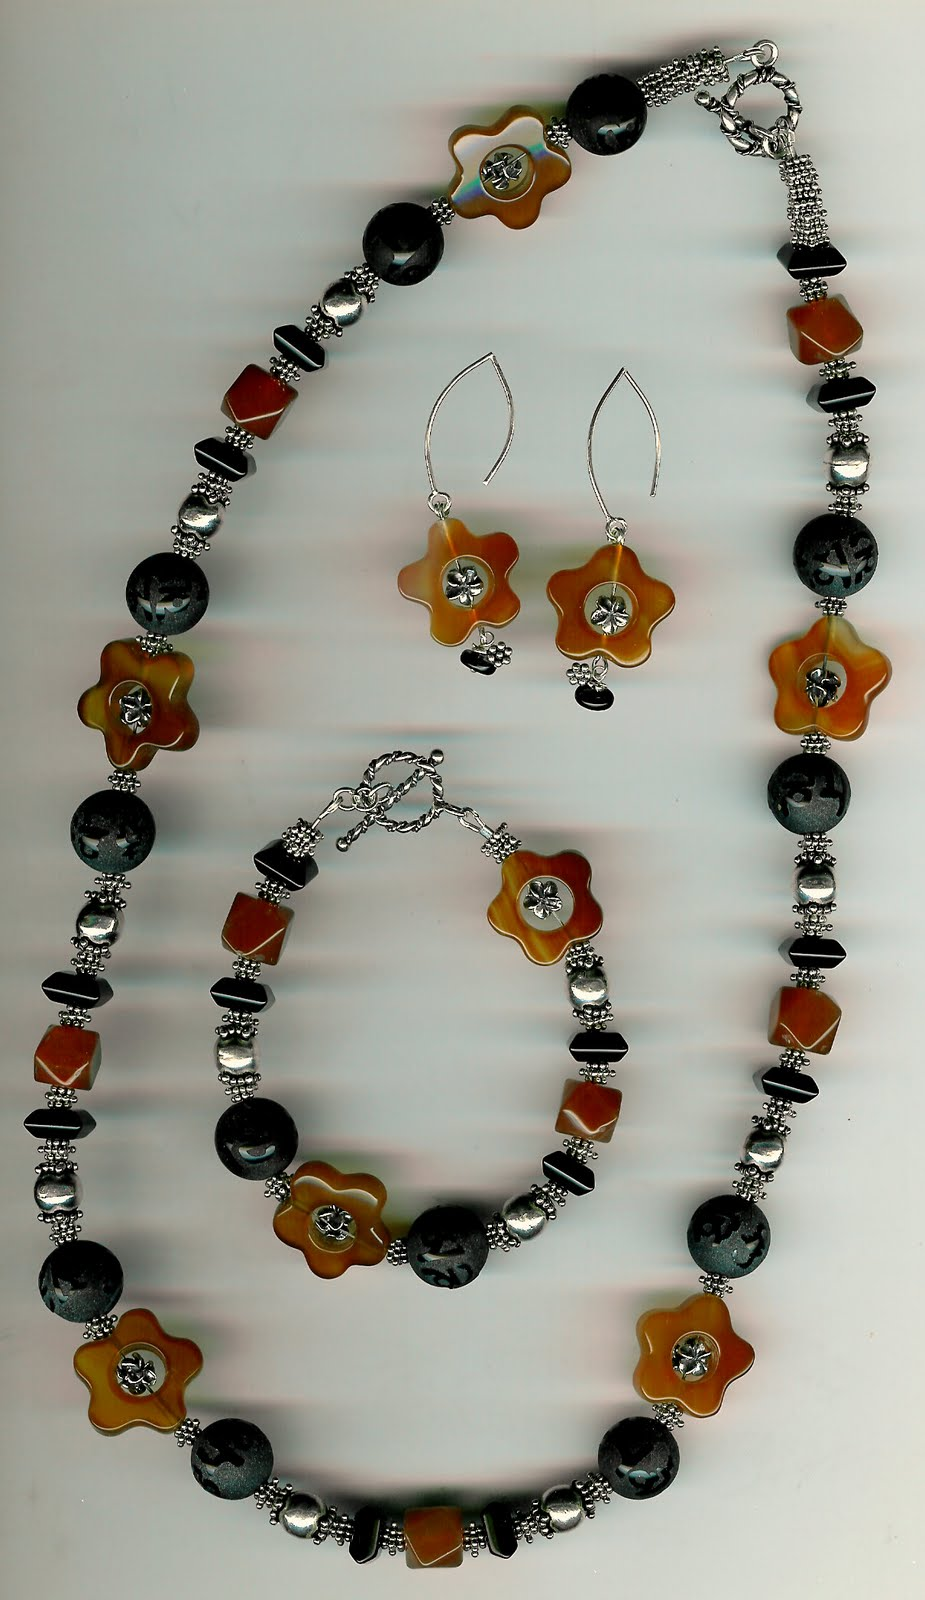 202. Carved Carnelian, Black Onyx with Bali Sterling Siver + Bracelet and Earrings